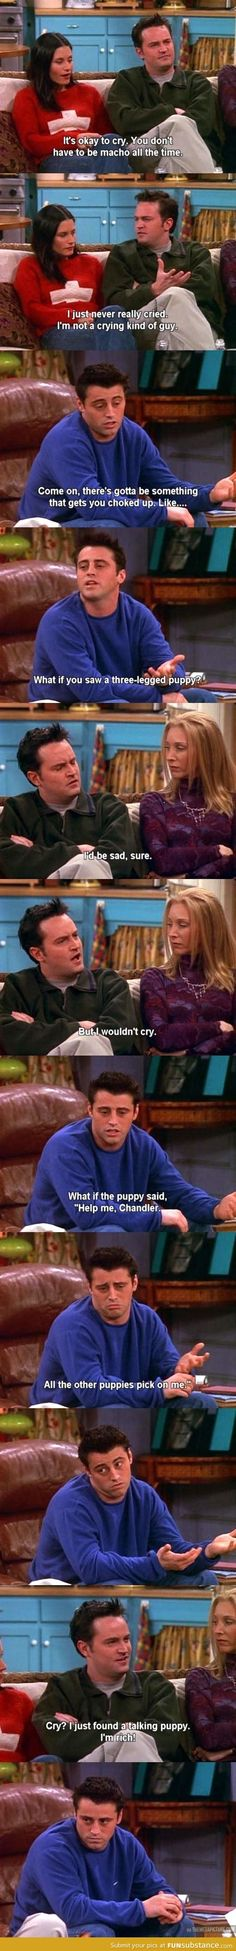 Chandler can't cry. Joey's face at the end ...priceless hahaha.